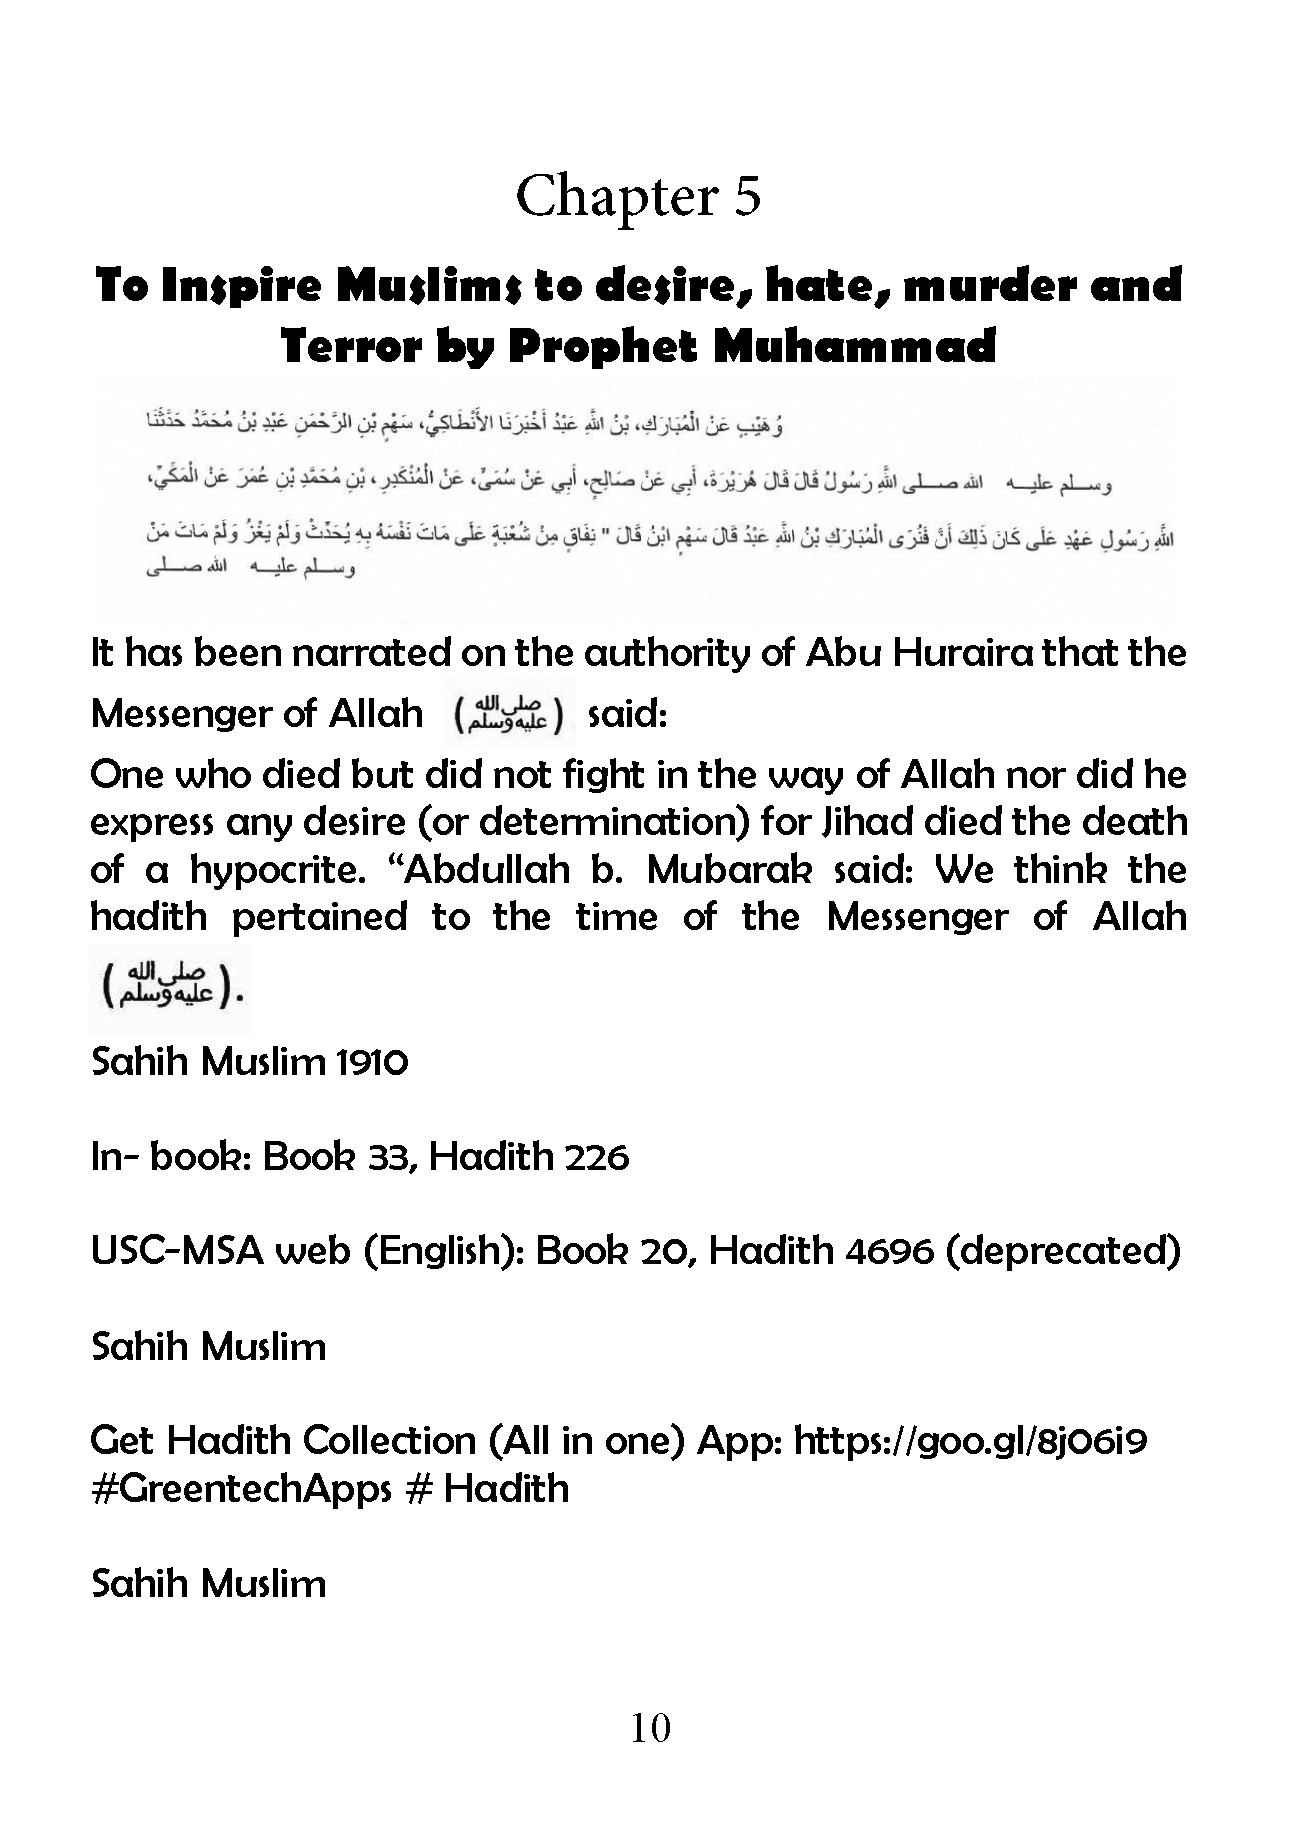 Supplement Page 10